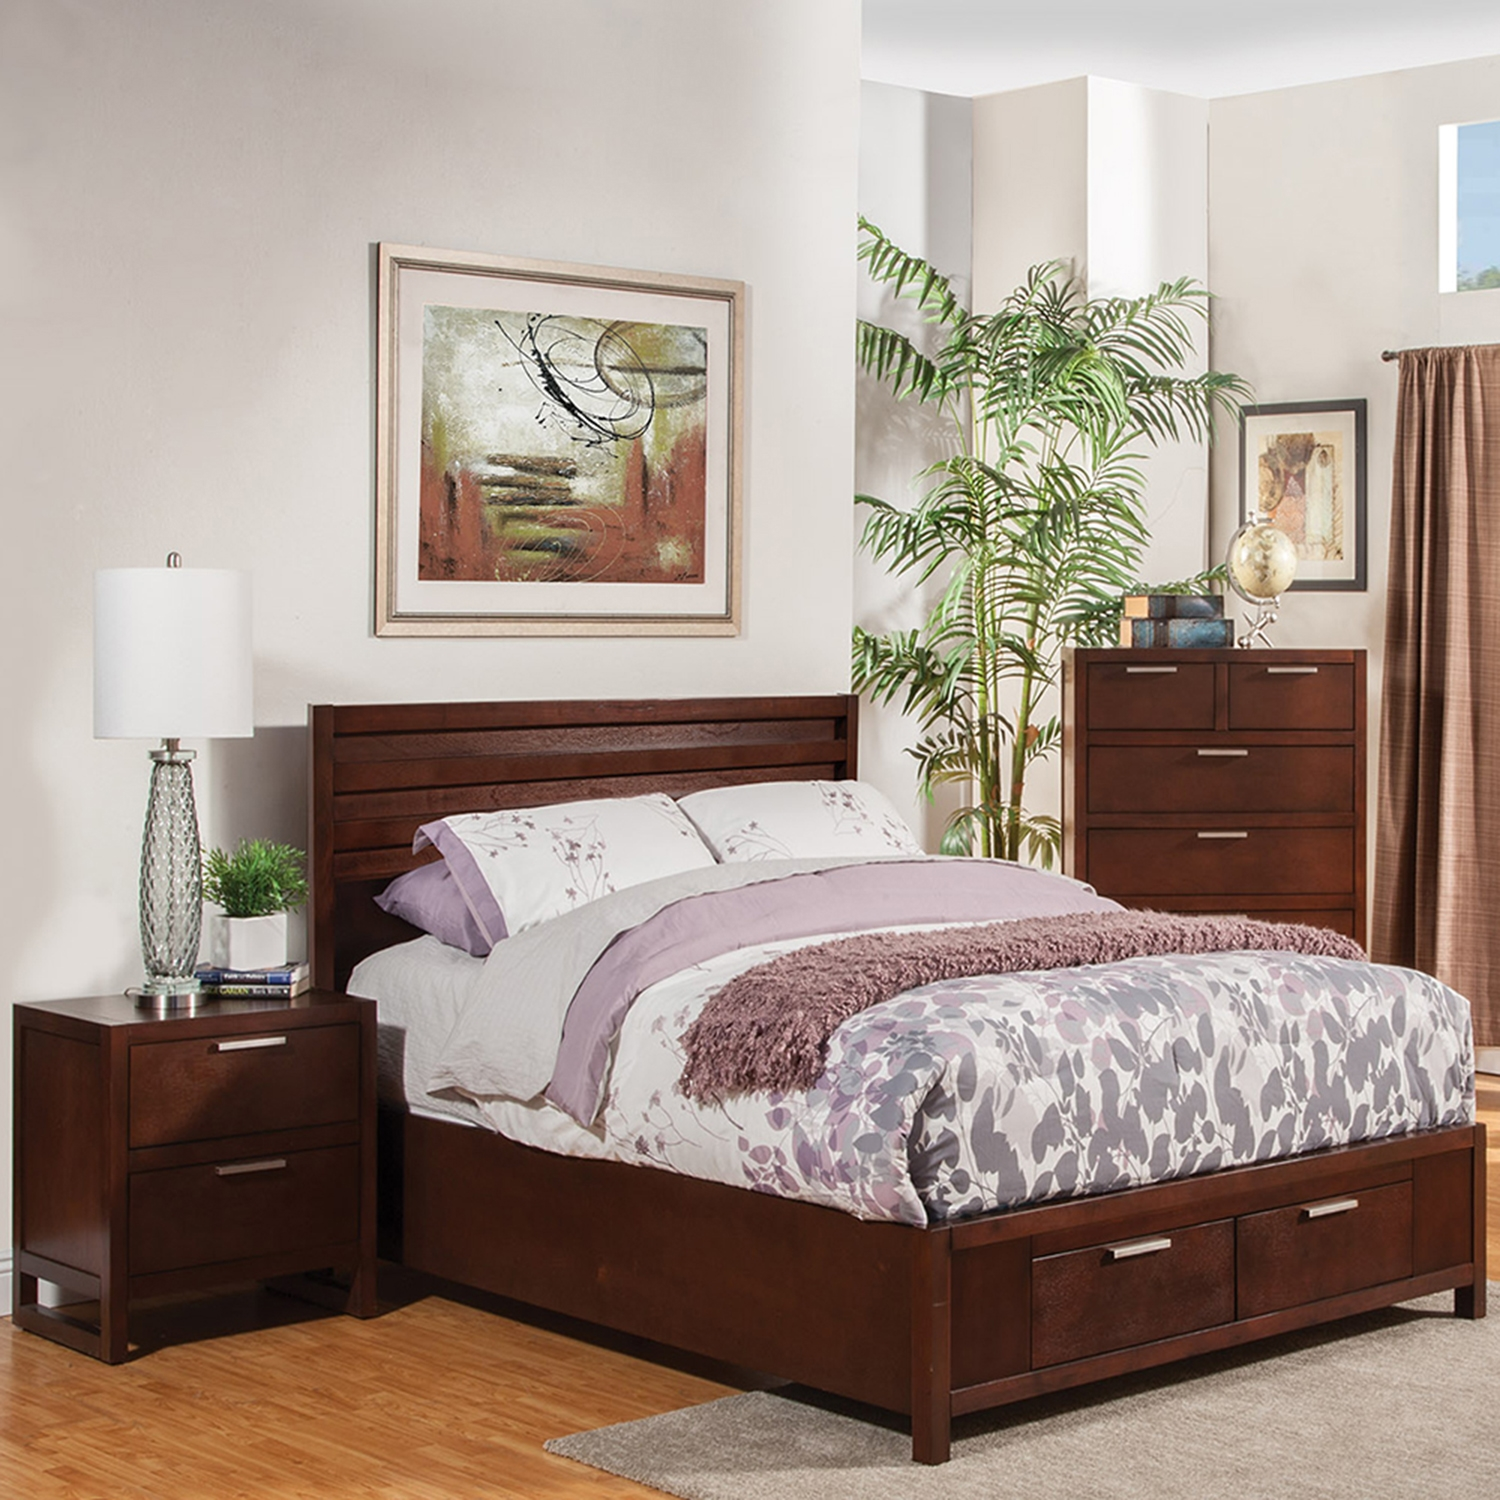 Urban Bedroom Set - Merlot